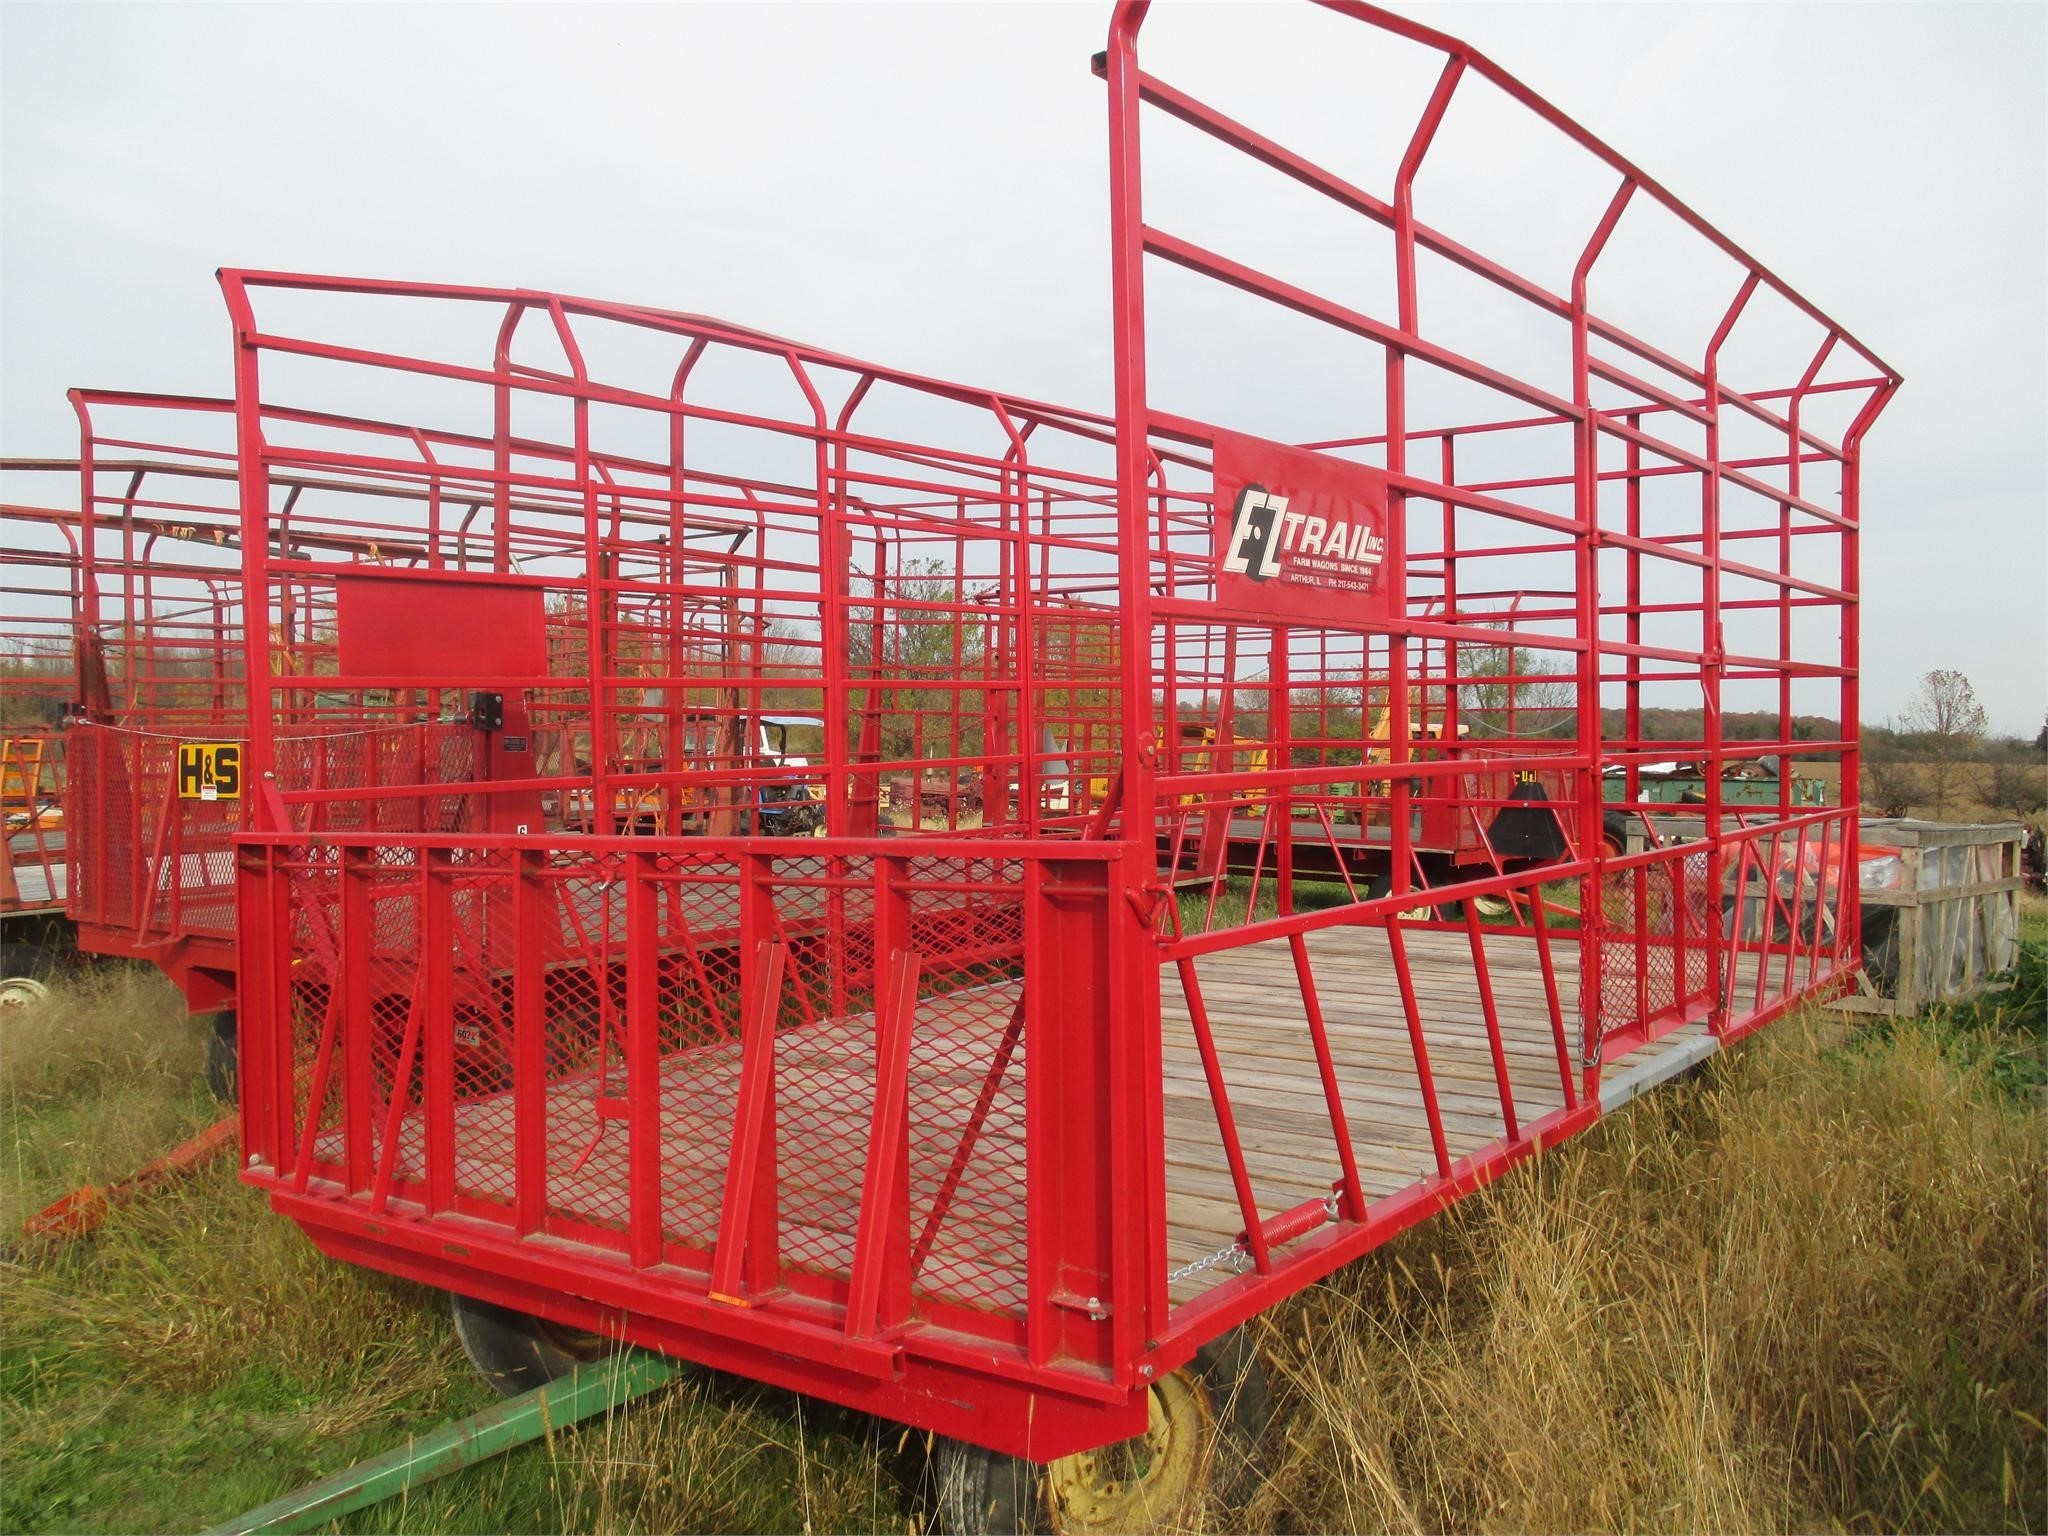 E-Z Trail 918 Bale Wagons and Trailer